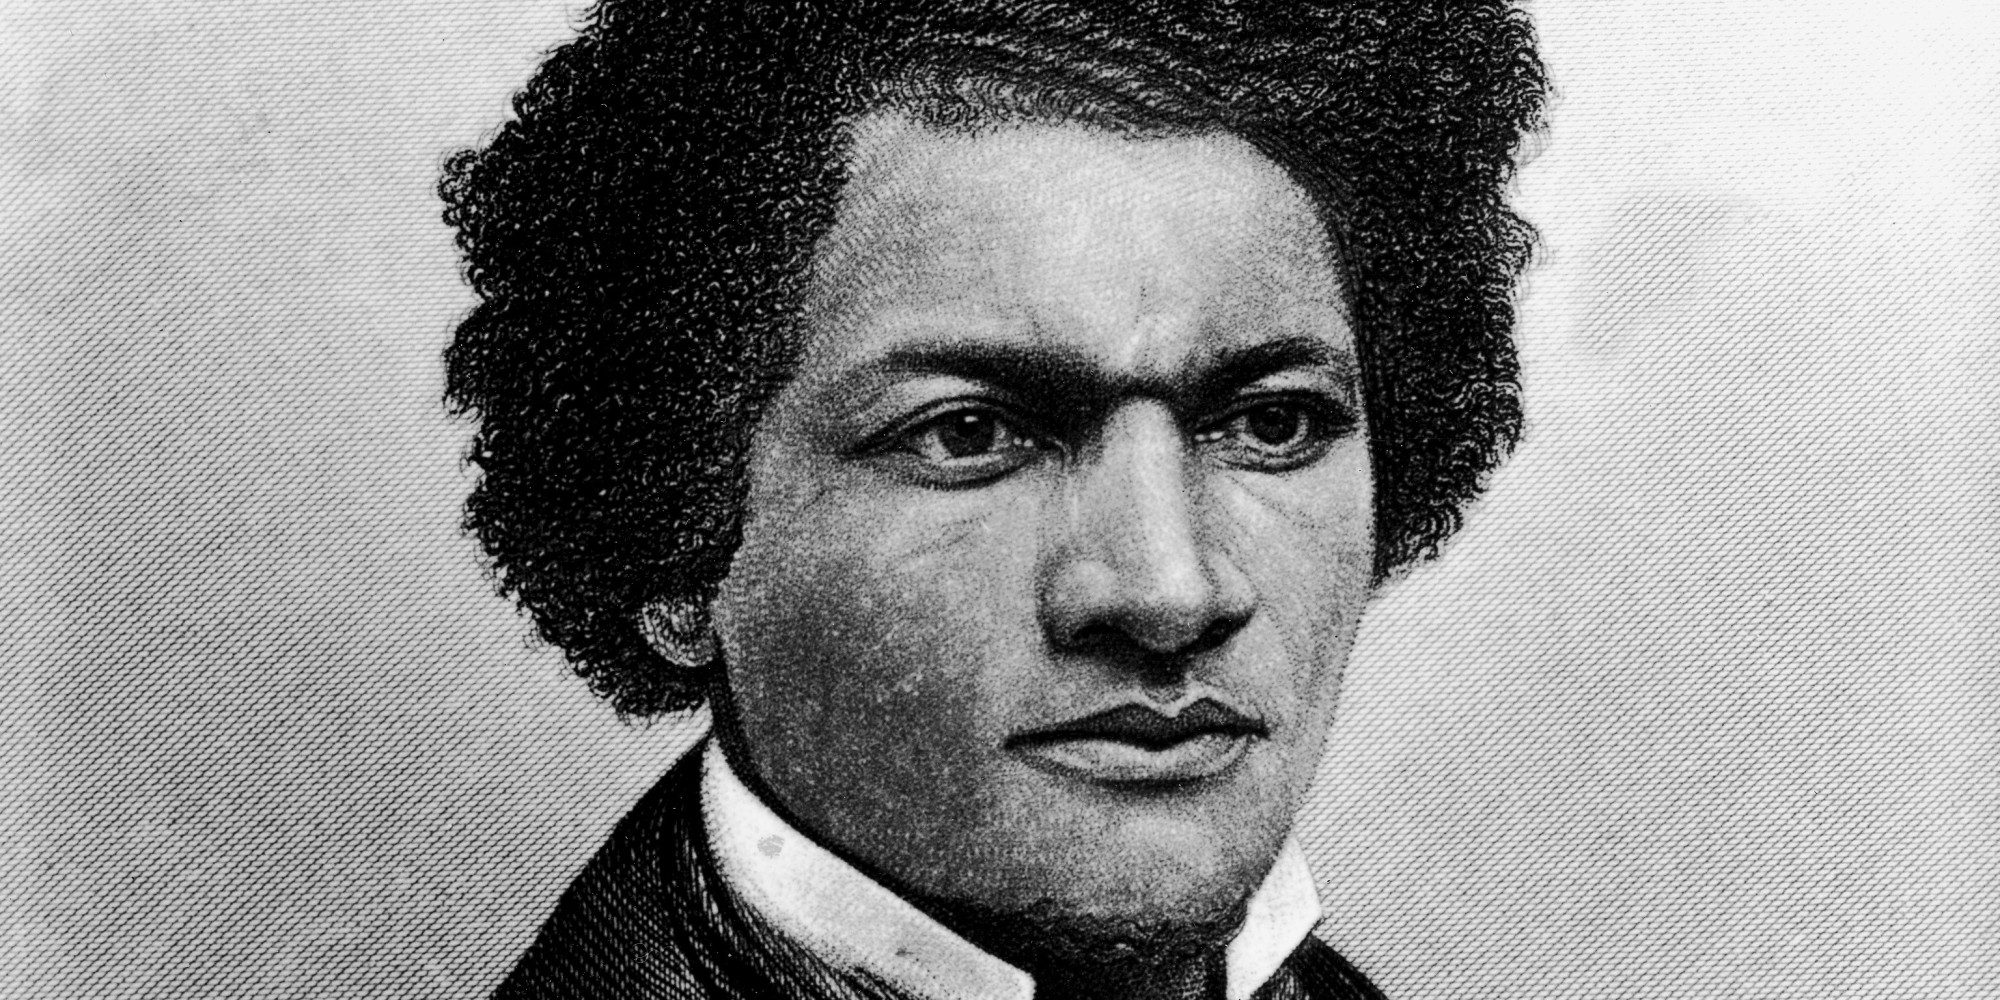 frederick douglass Frederick douglass was born frederick augustus washington bailey in talbot county, maryland in 1818 his mother was a slave named harriet bailey, who brought him into the world in the cabin of her mother, betsy bailey, also a slave but whose husband was free.